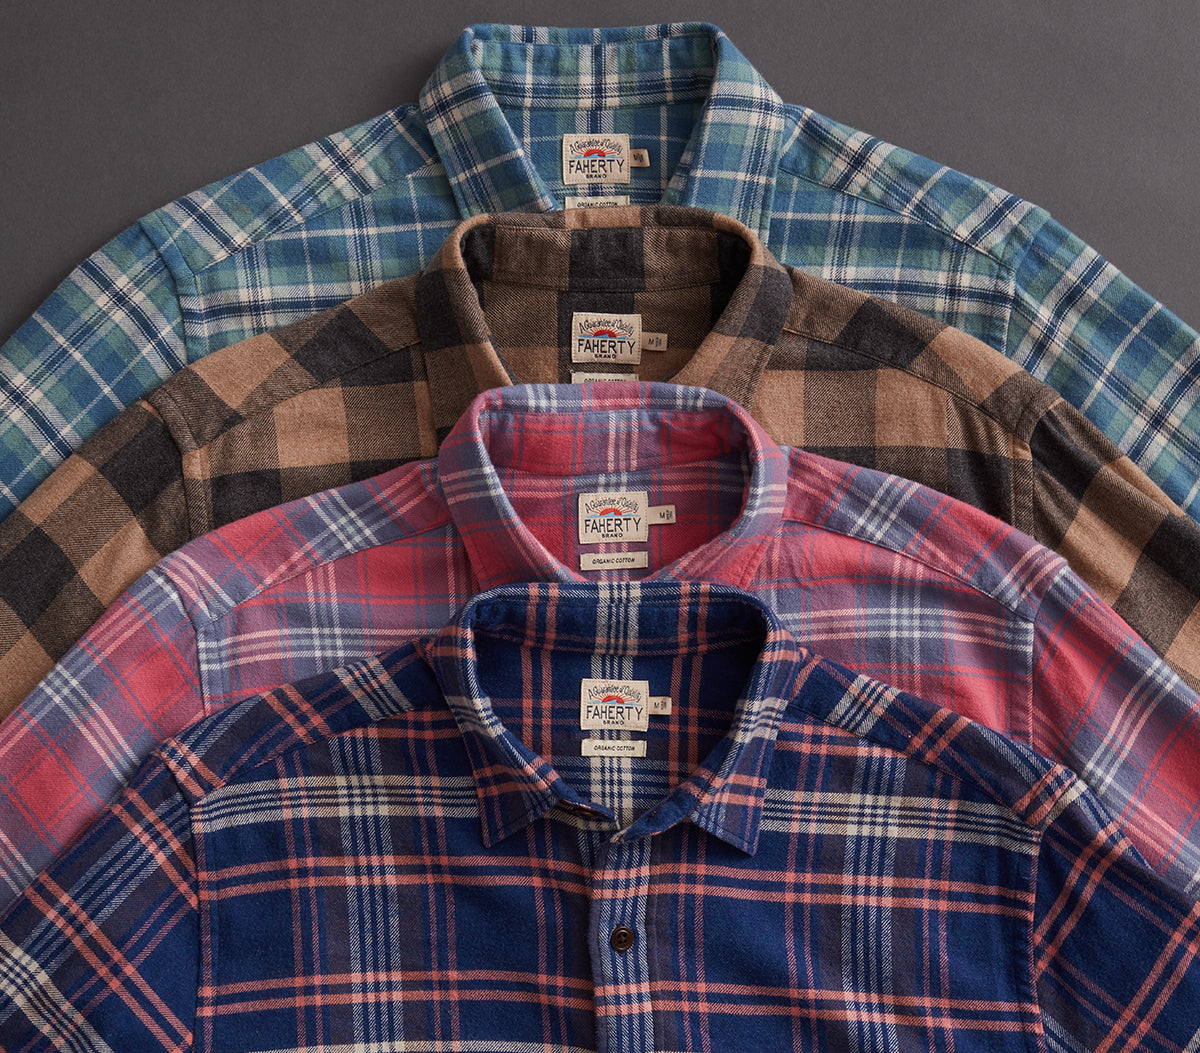 Four flannel shirts stacked on top of each other.